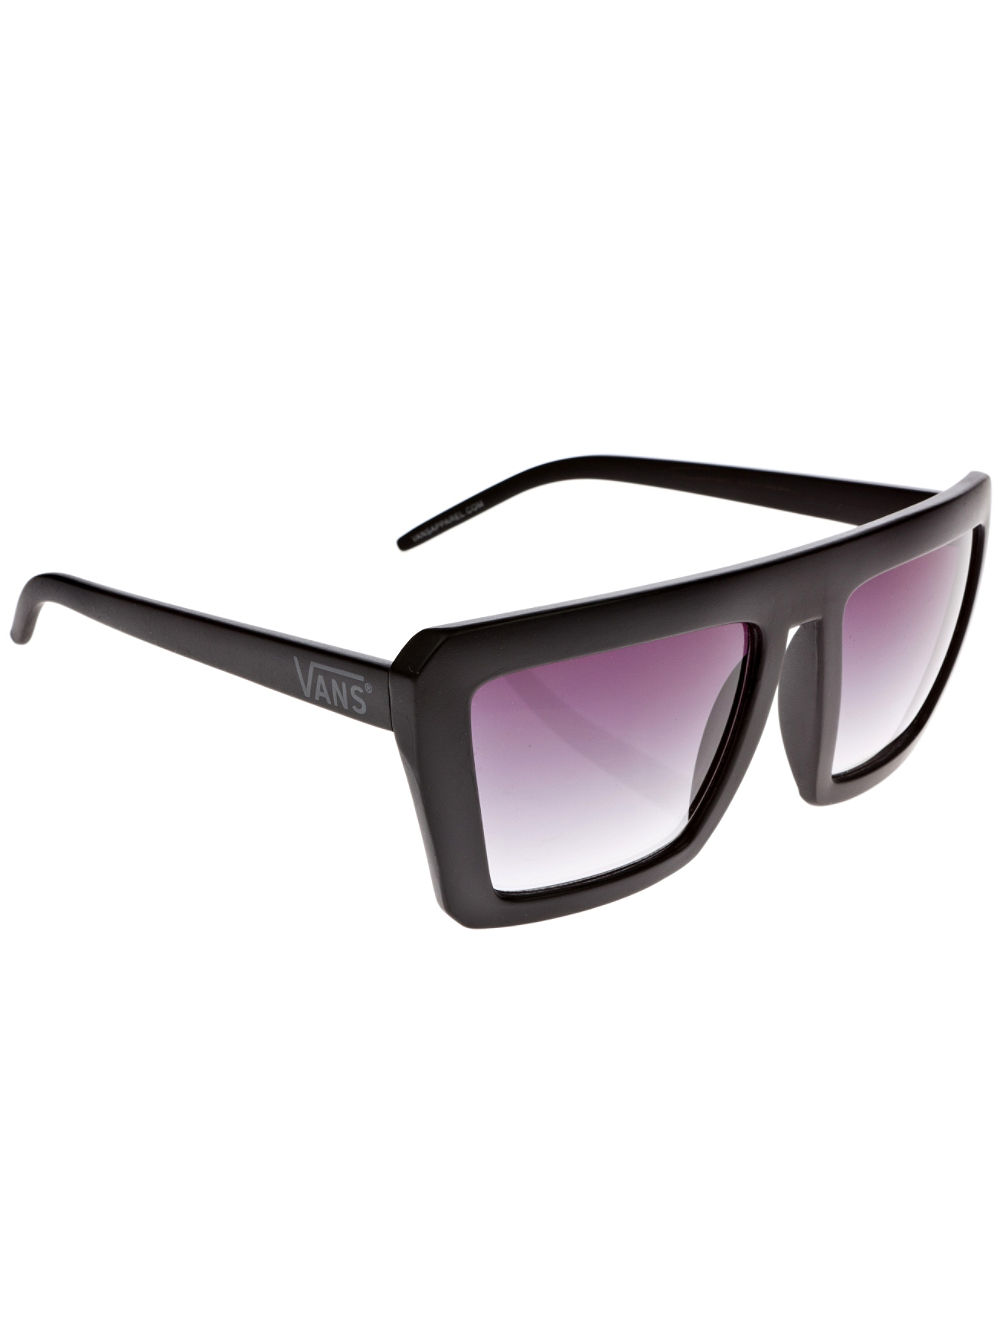 Retro Rocker Shades Women